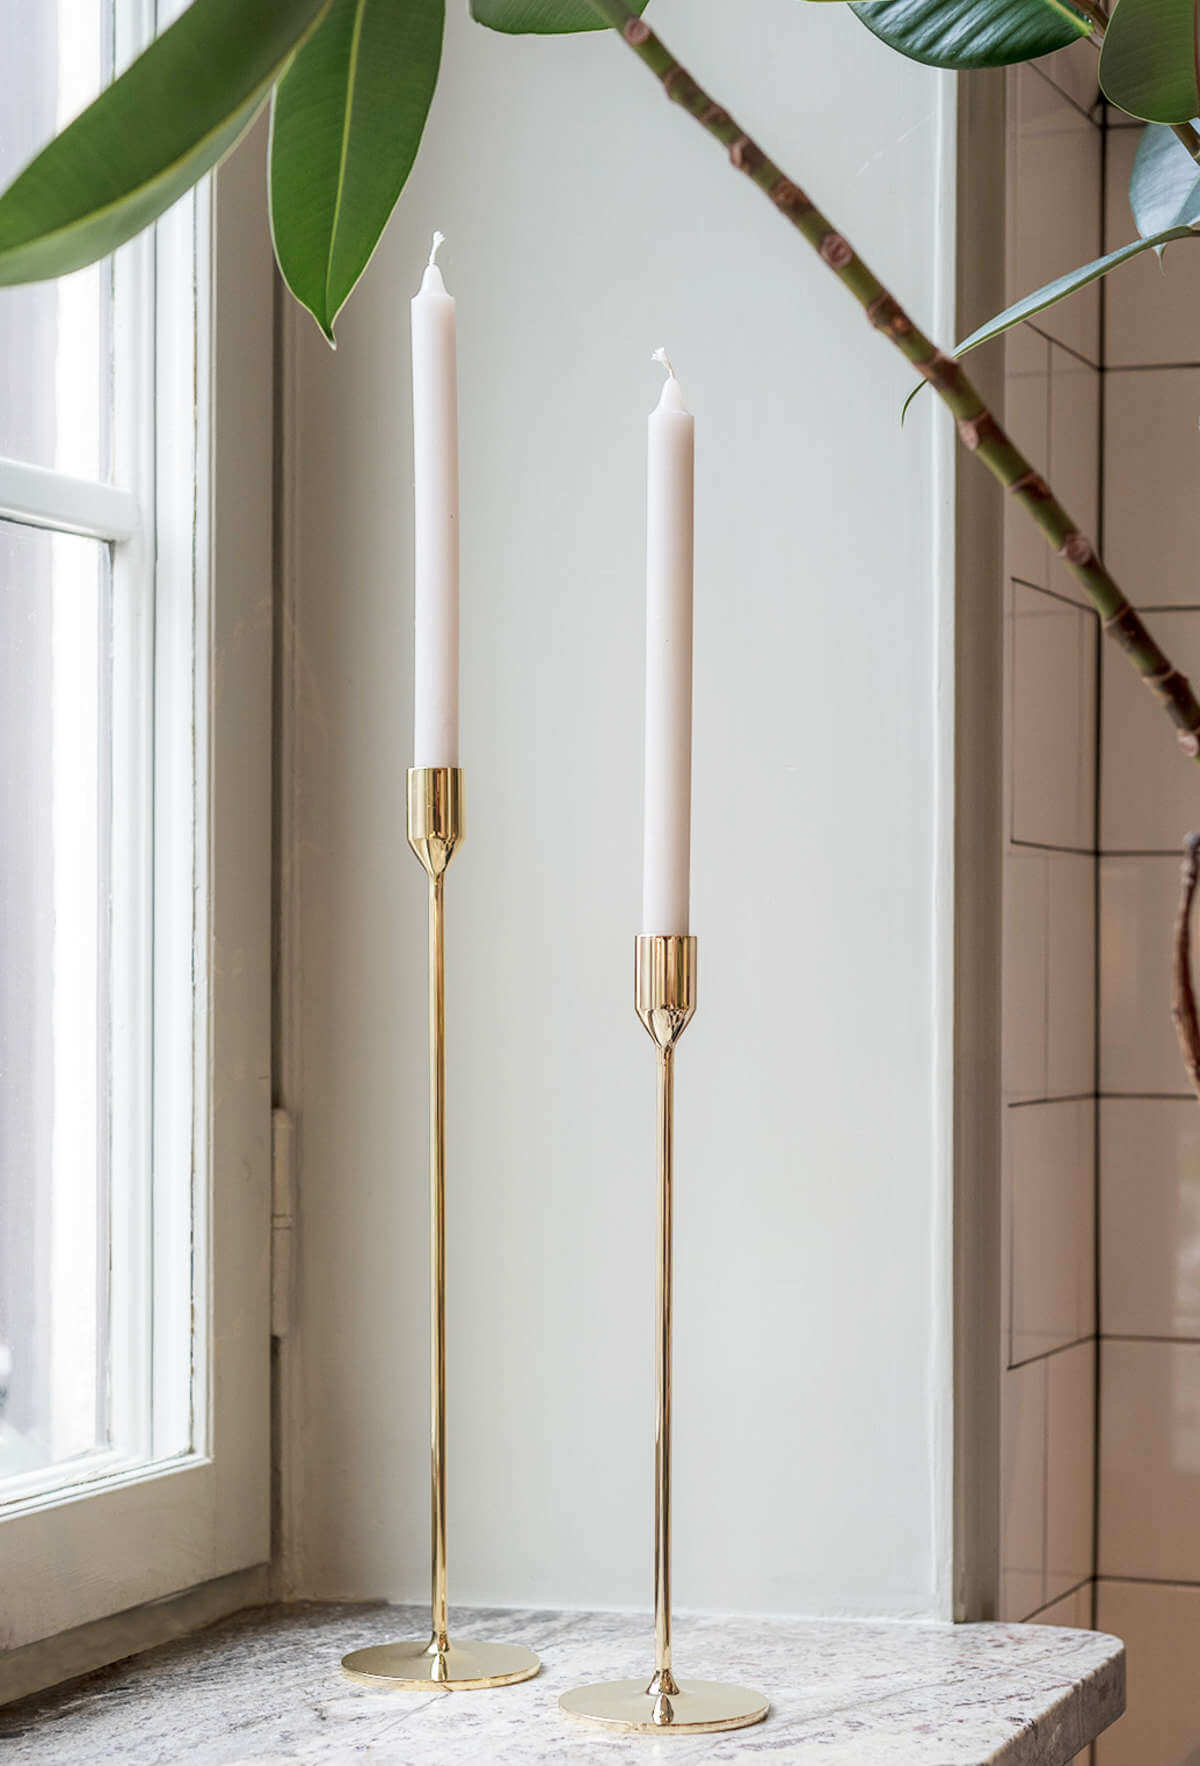 Nattlight Candle Sticks (2)  'Brass""